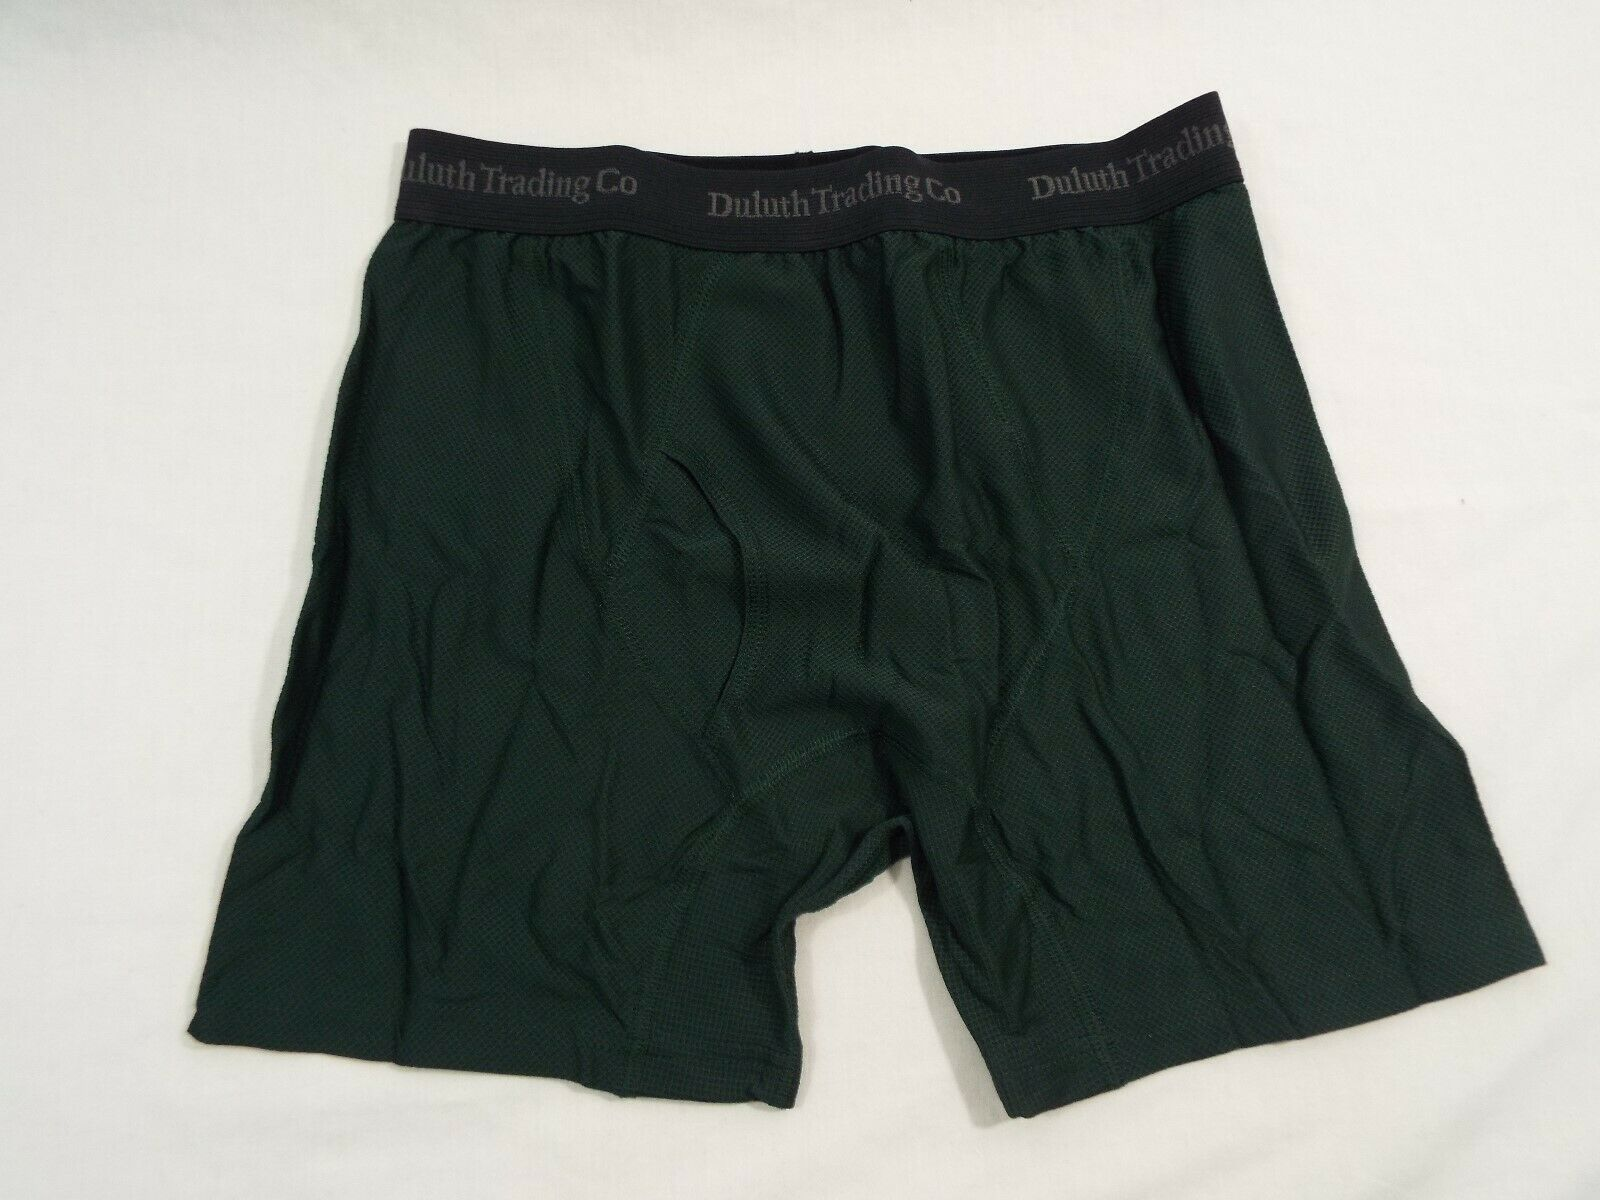 1 Pair Duluth Trading Co X Long Buck Naked Boxer Brief